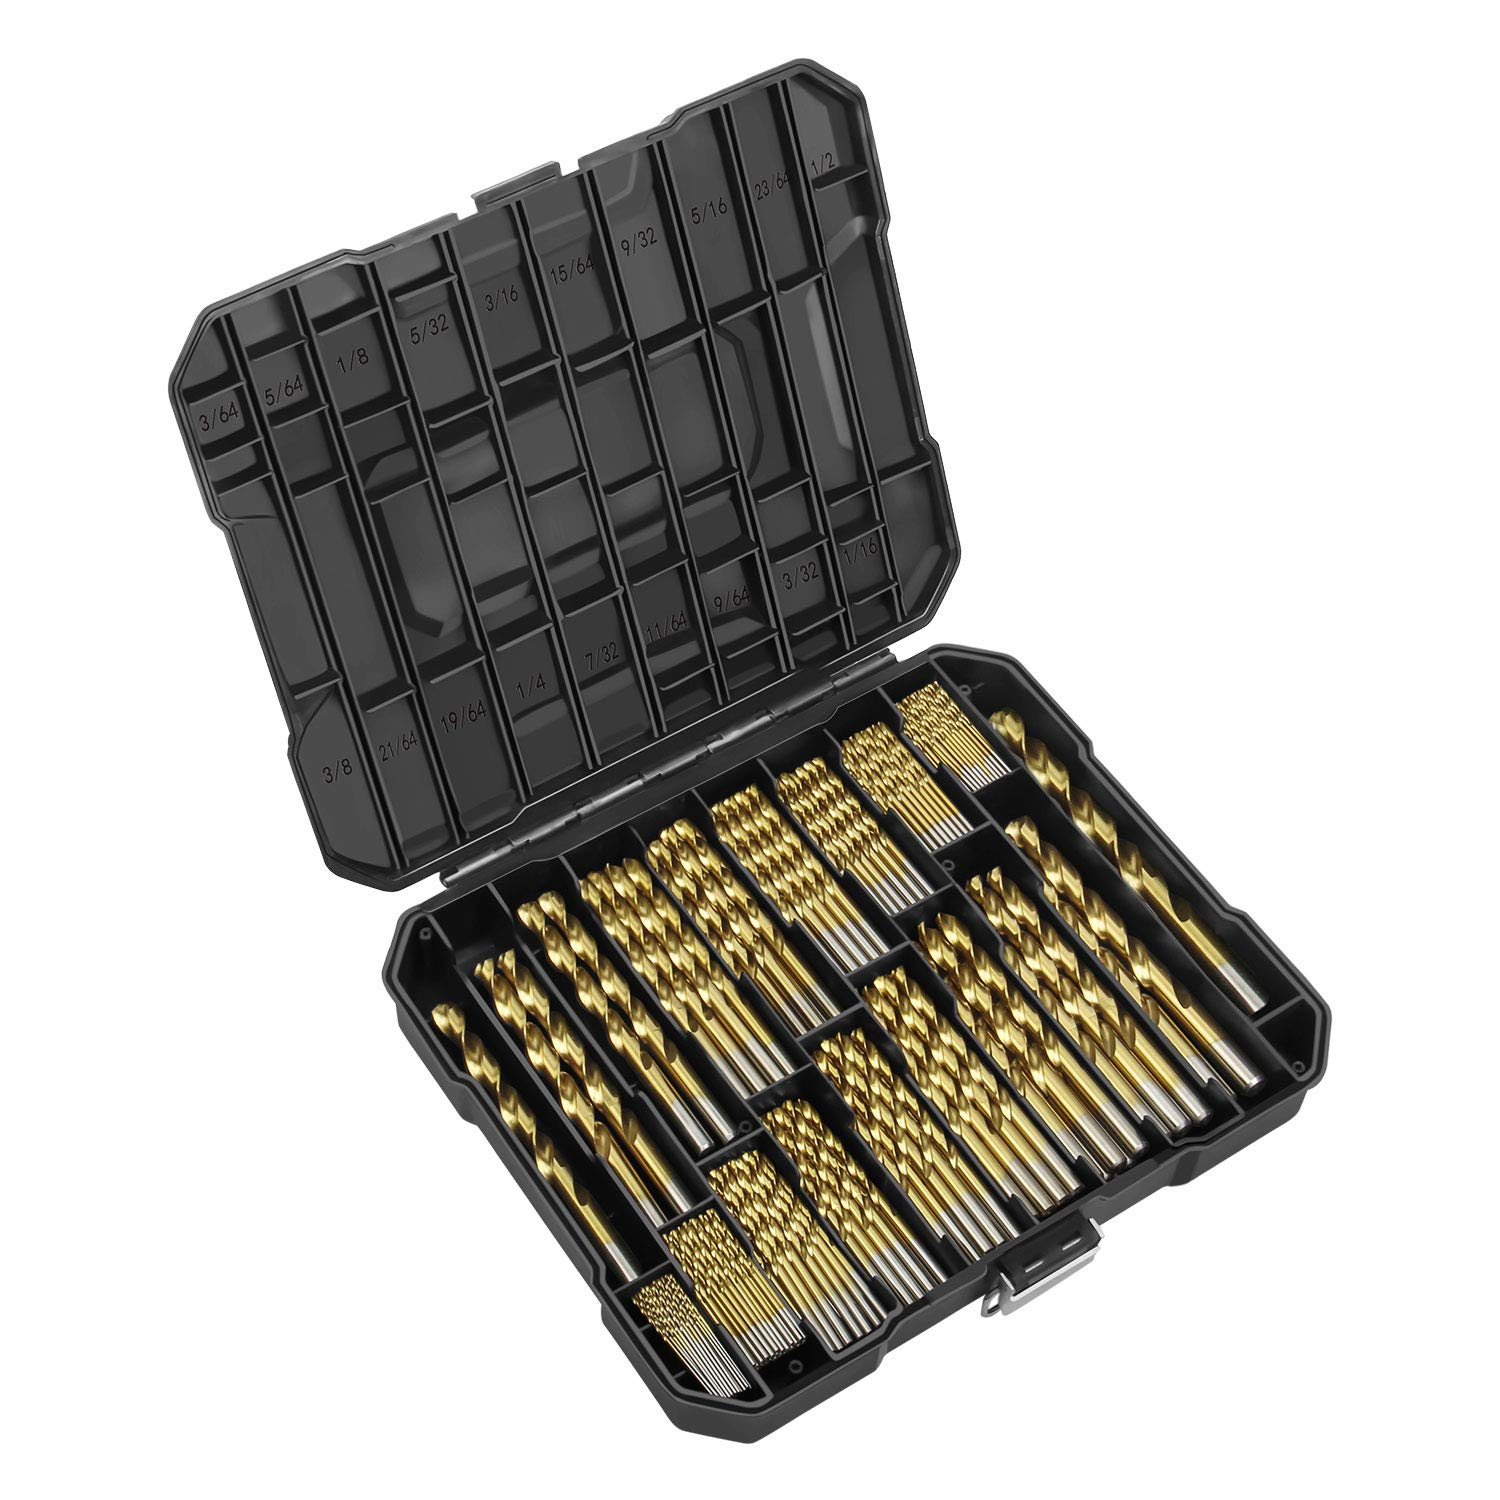 """EnerTwist Titanium Drill Bit Kit Set for Metal and Wood 230-Piece - Anti-walking 135° Tip Coated HSS from 3/64"""" up to 1/2 Inch, ET-DBA-230S"""